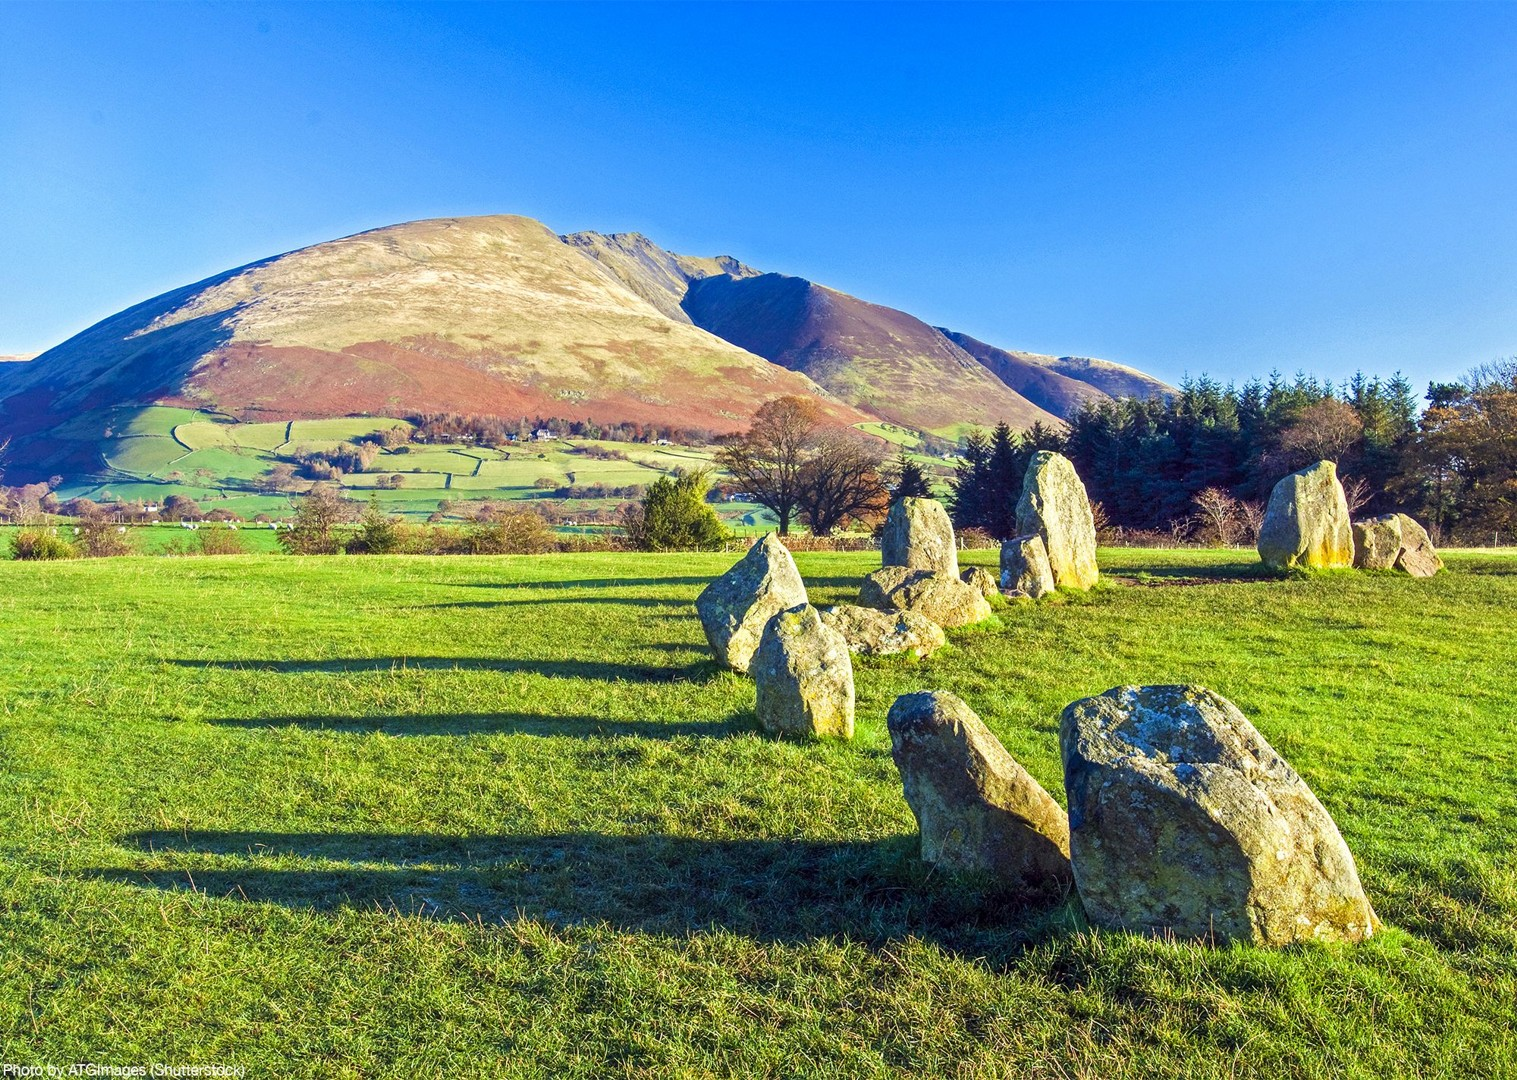 castlerigg-stone-circle-3000-bc-culture-uk-bike-leisure-tour-guided.jpg - UK - Lake District - Derwent Water - Guided Leisure Cycling Holiday - Leisure Cycling